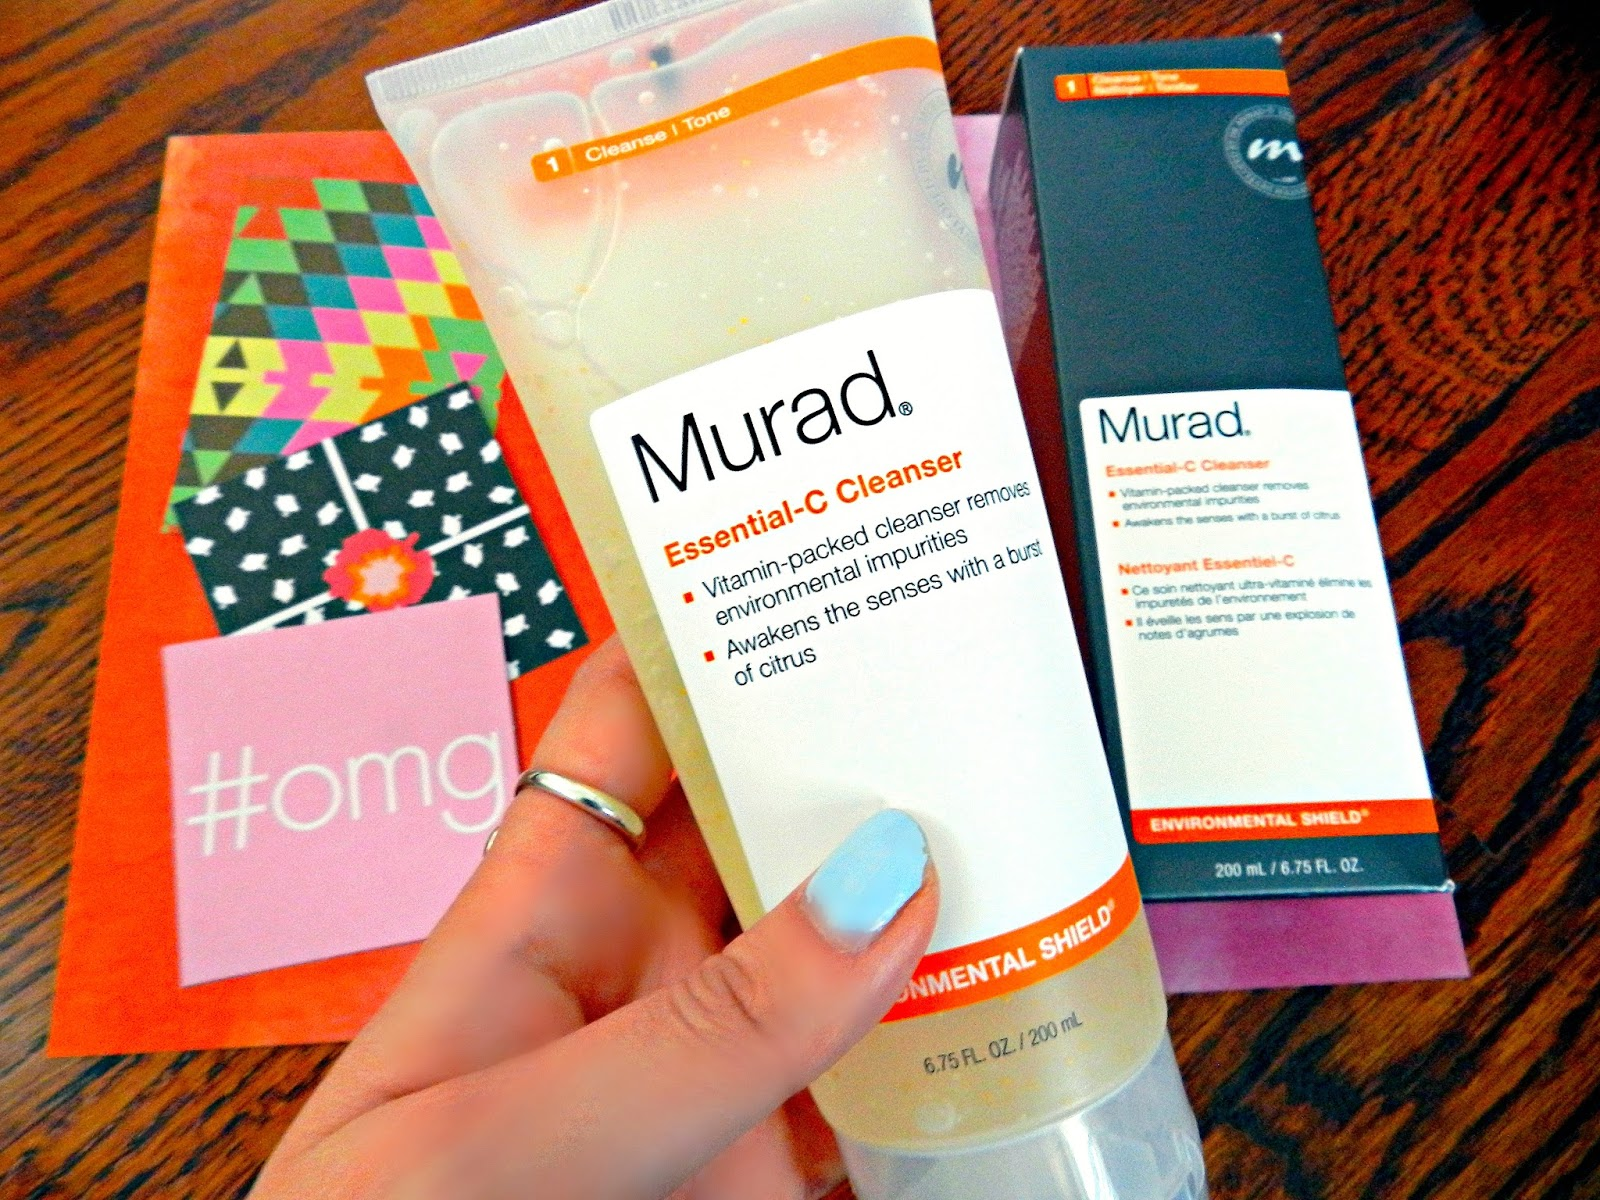 Murad Environmental Shield Set Skincare SPF Cleanser sephora